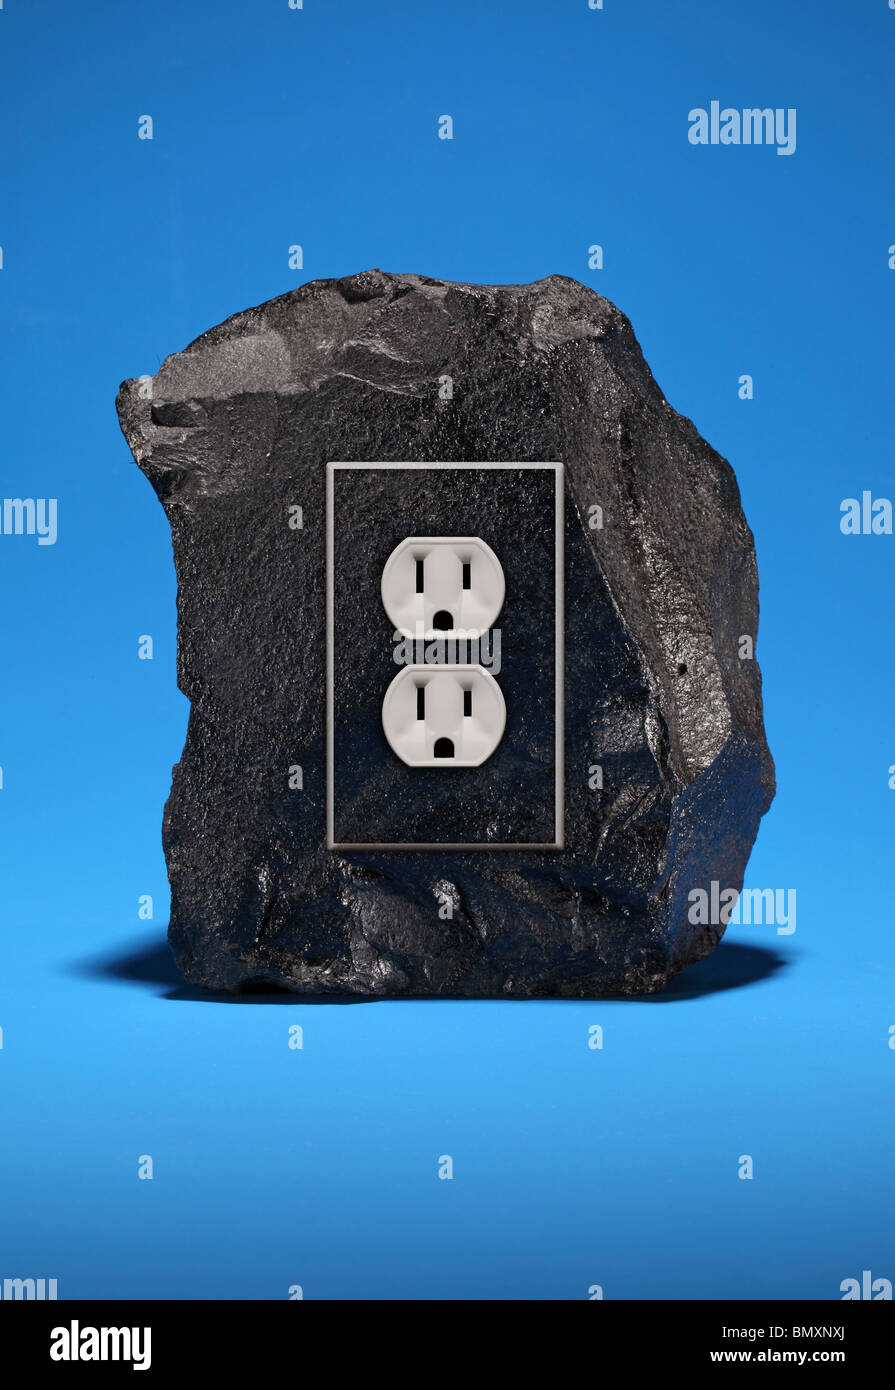 A large black chunk of coal with an electrical power outlet fixture ...